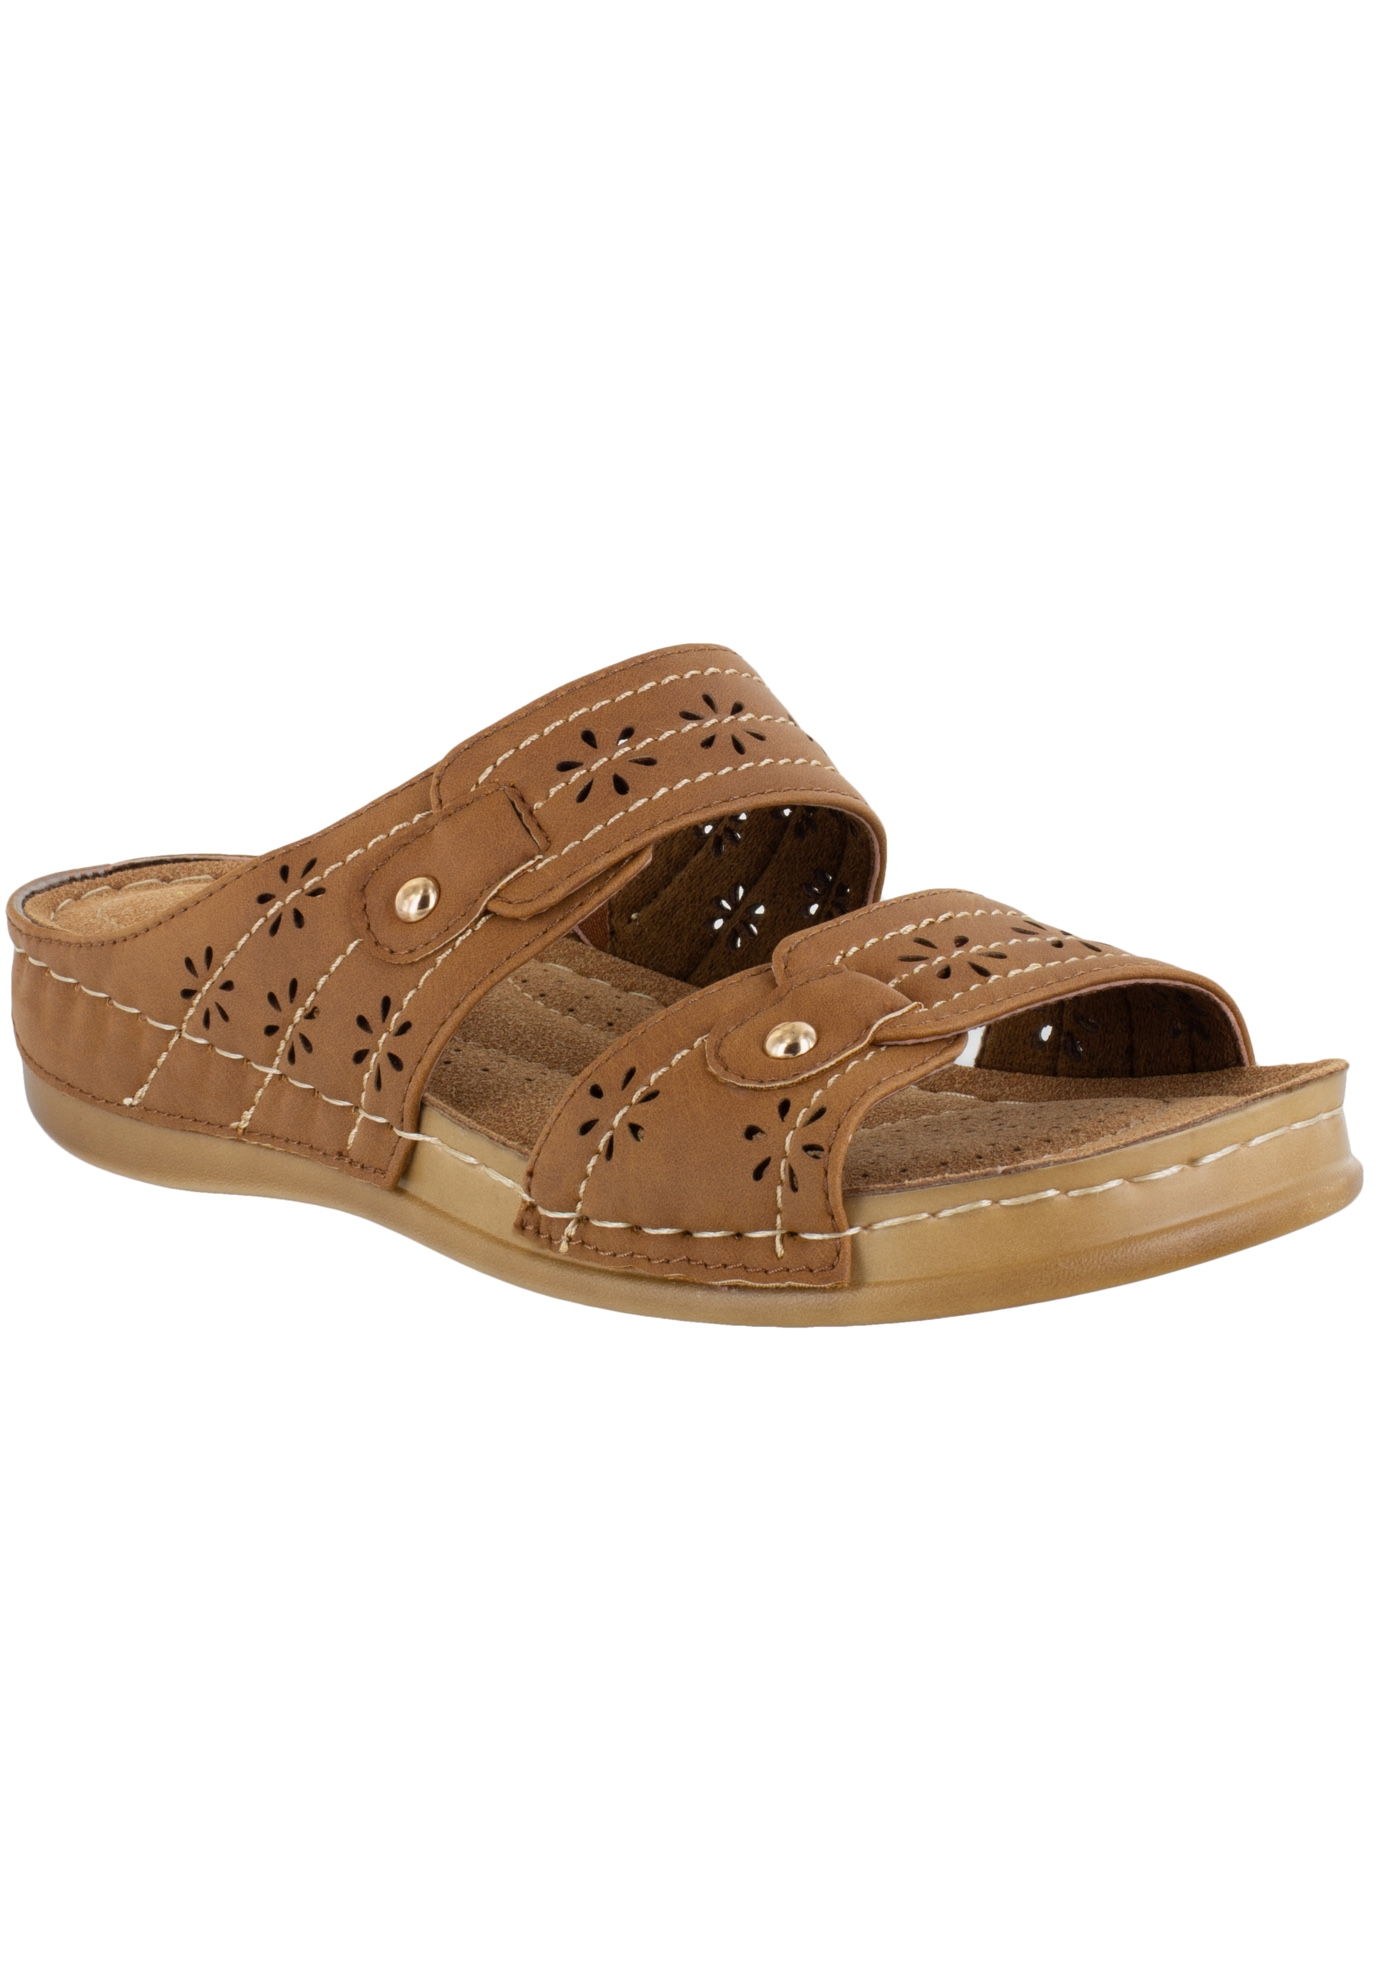 Cash Sandals by Easy Street,